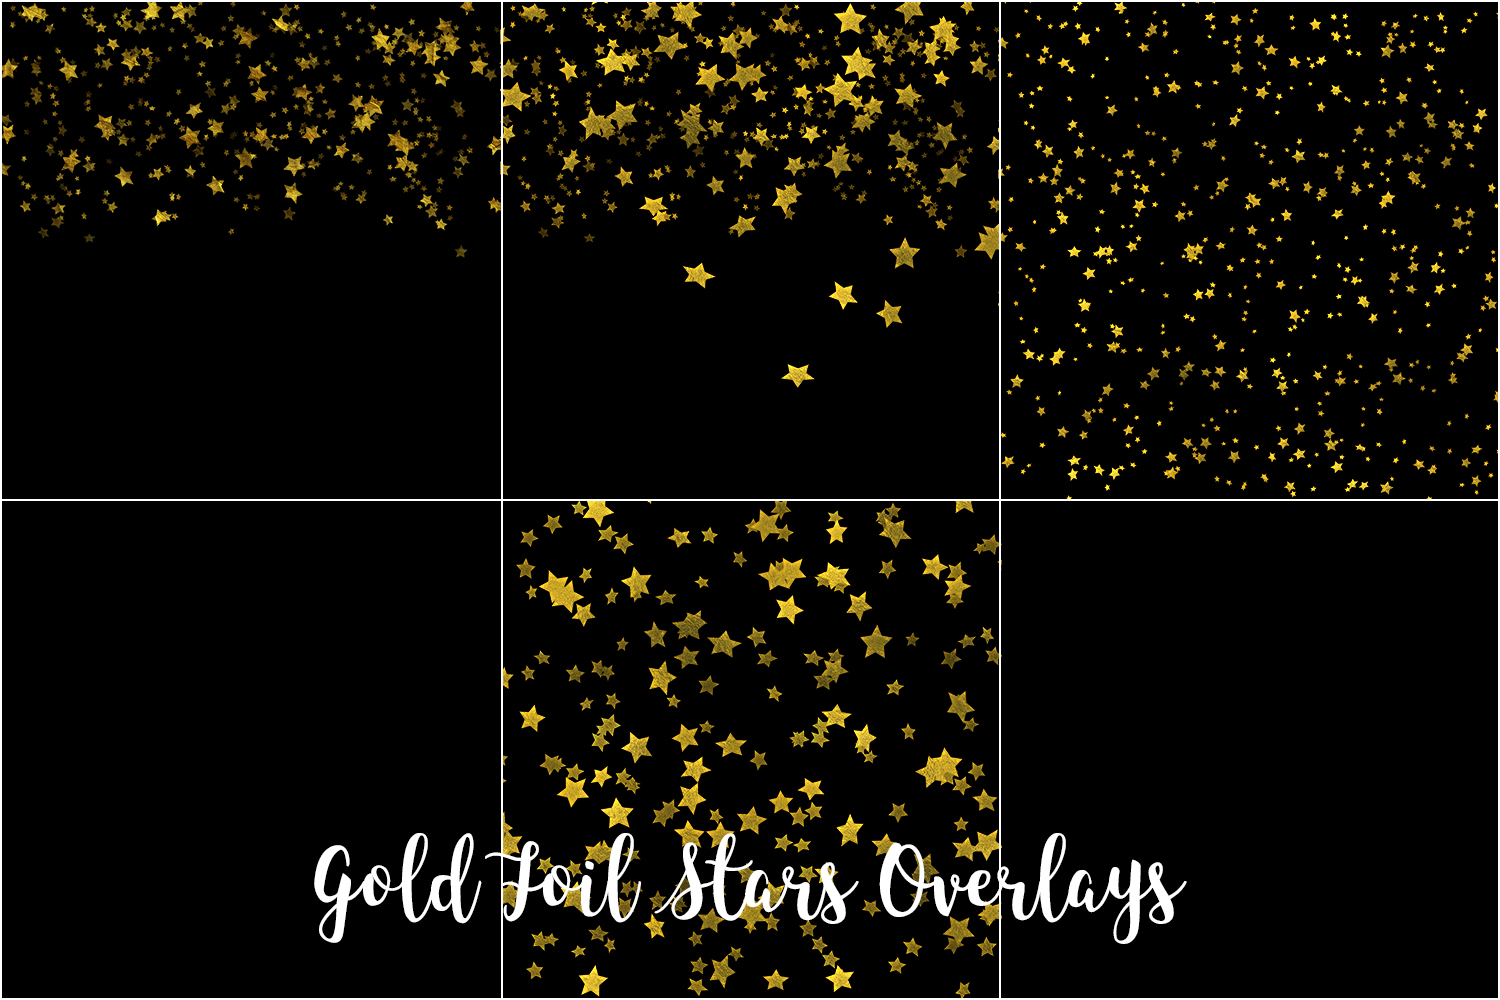 Gold Foil Stars Overlays, Gold Stars Confetti example image 2